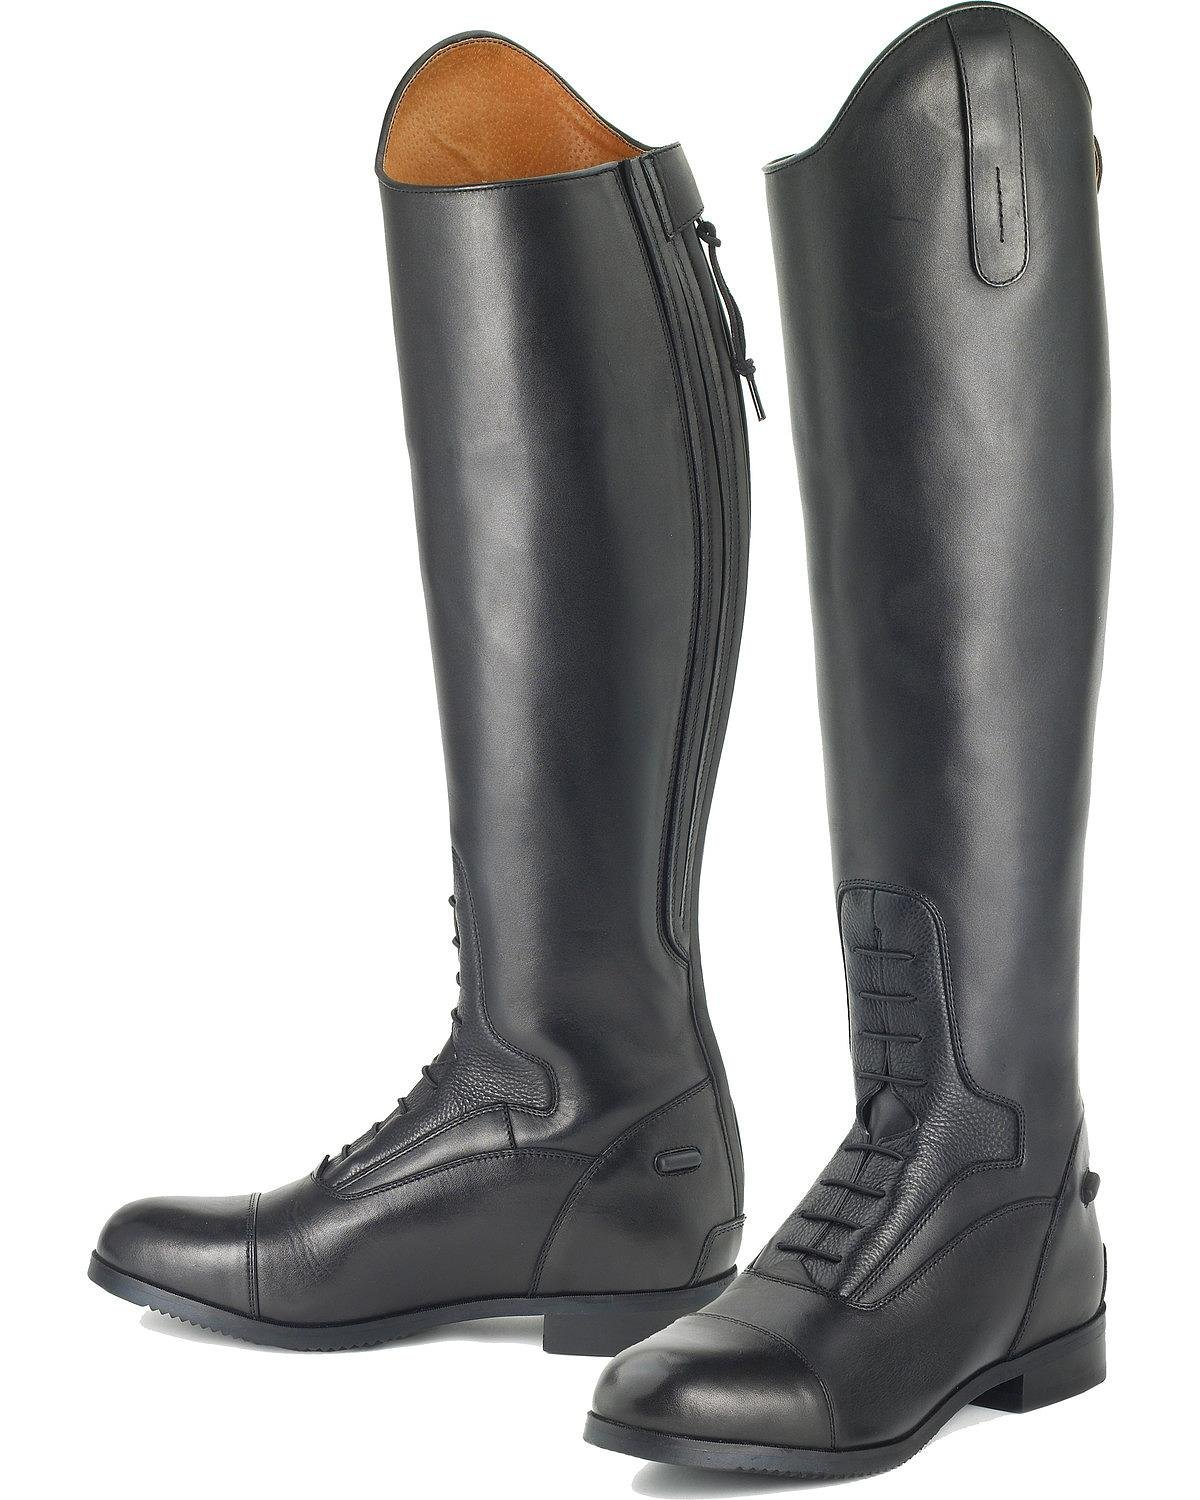 Ovation Flex Sport Ladies Field US|X-wide Boot B00HYV2K10 7 B(M) US|X-wide Field 6a8b79